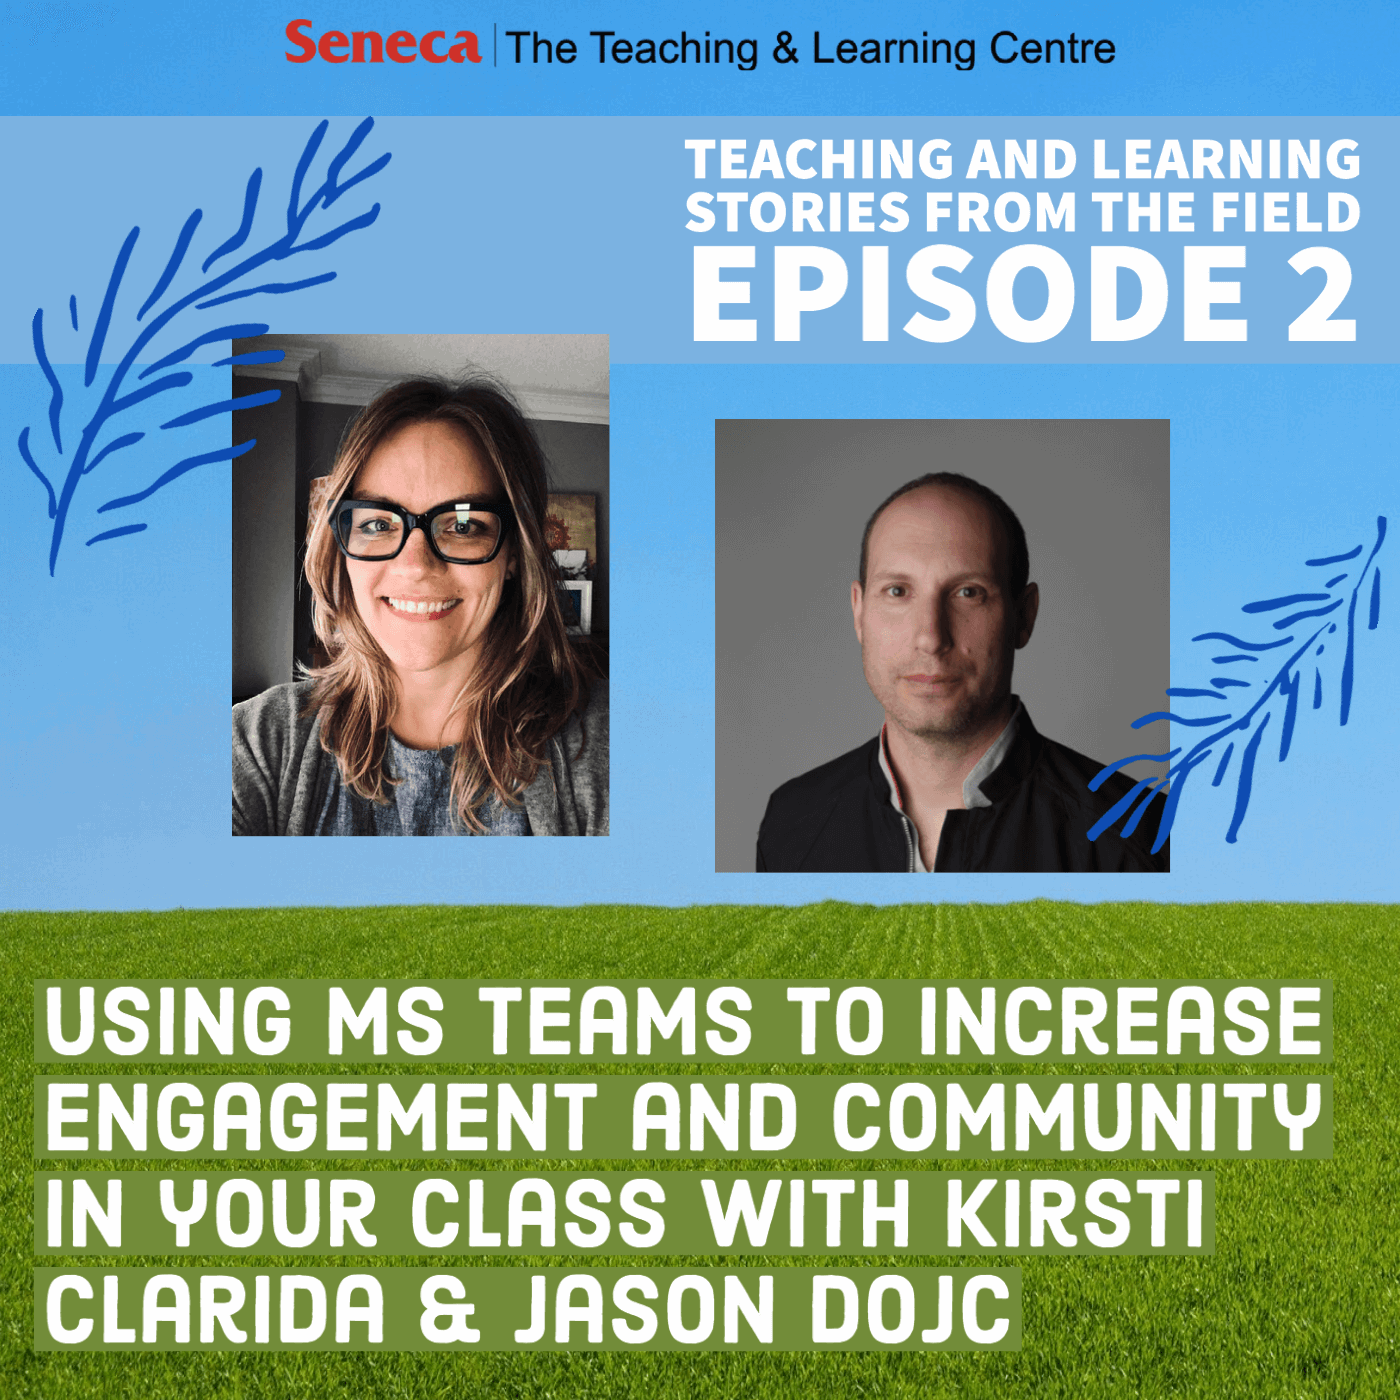 Episode 2 of the Teaching and Learning Stores podcast is called Using Microsoft Teams to Increase Engagement and Community in Your Class with Kirsti Clarida and Jason Dojc